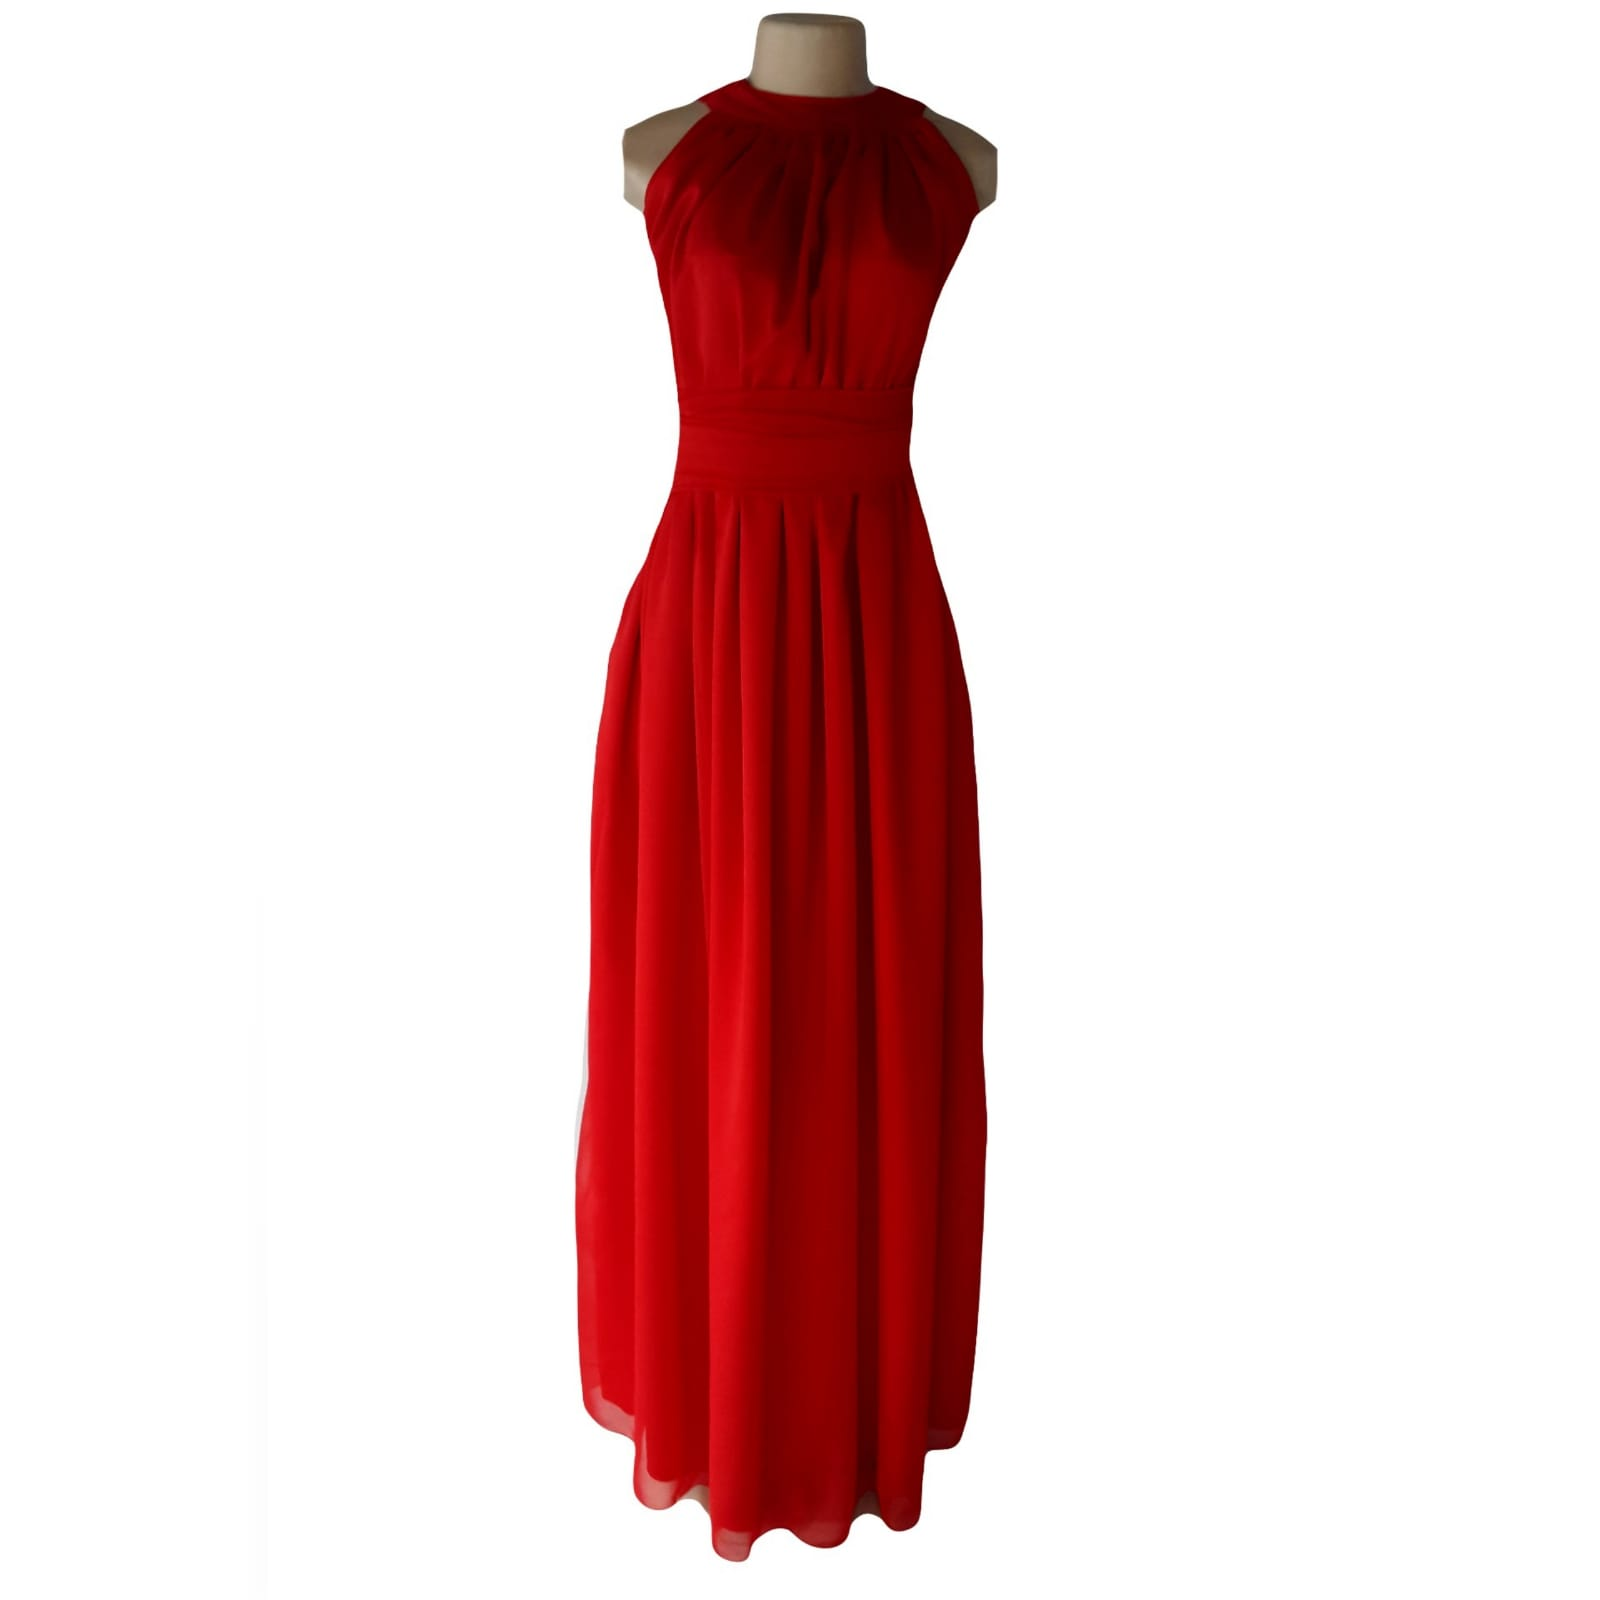 Long red chiffon evening dress 1 long red chiffon evening dress, with a gathered neckline, gathered belt and gathered bottom part